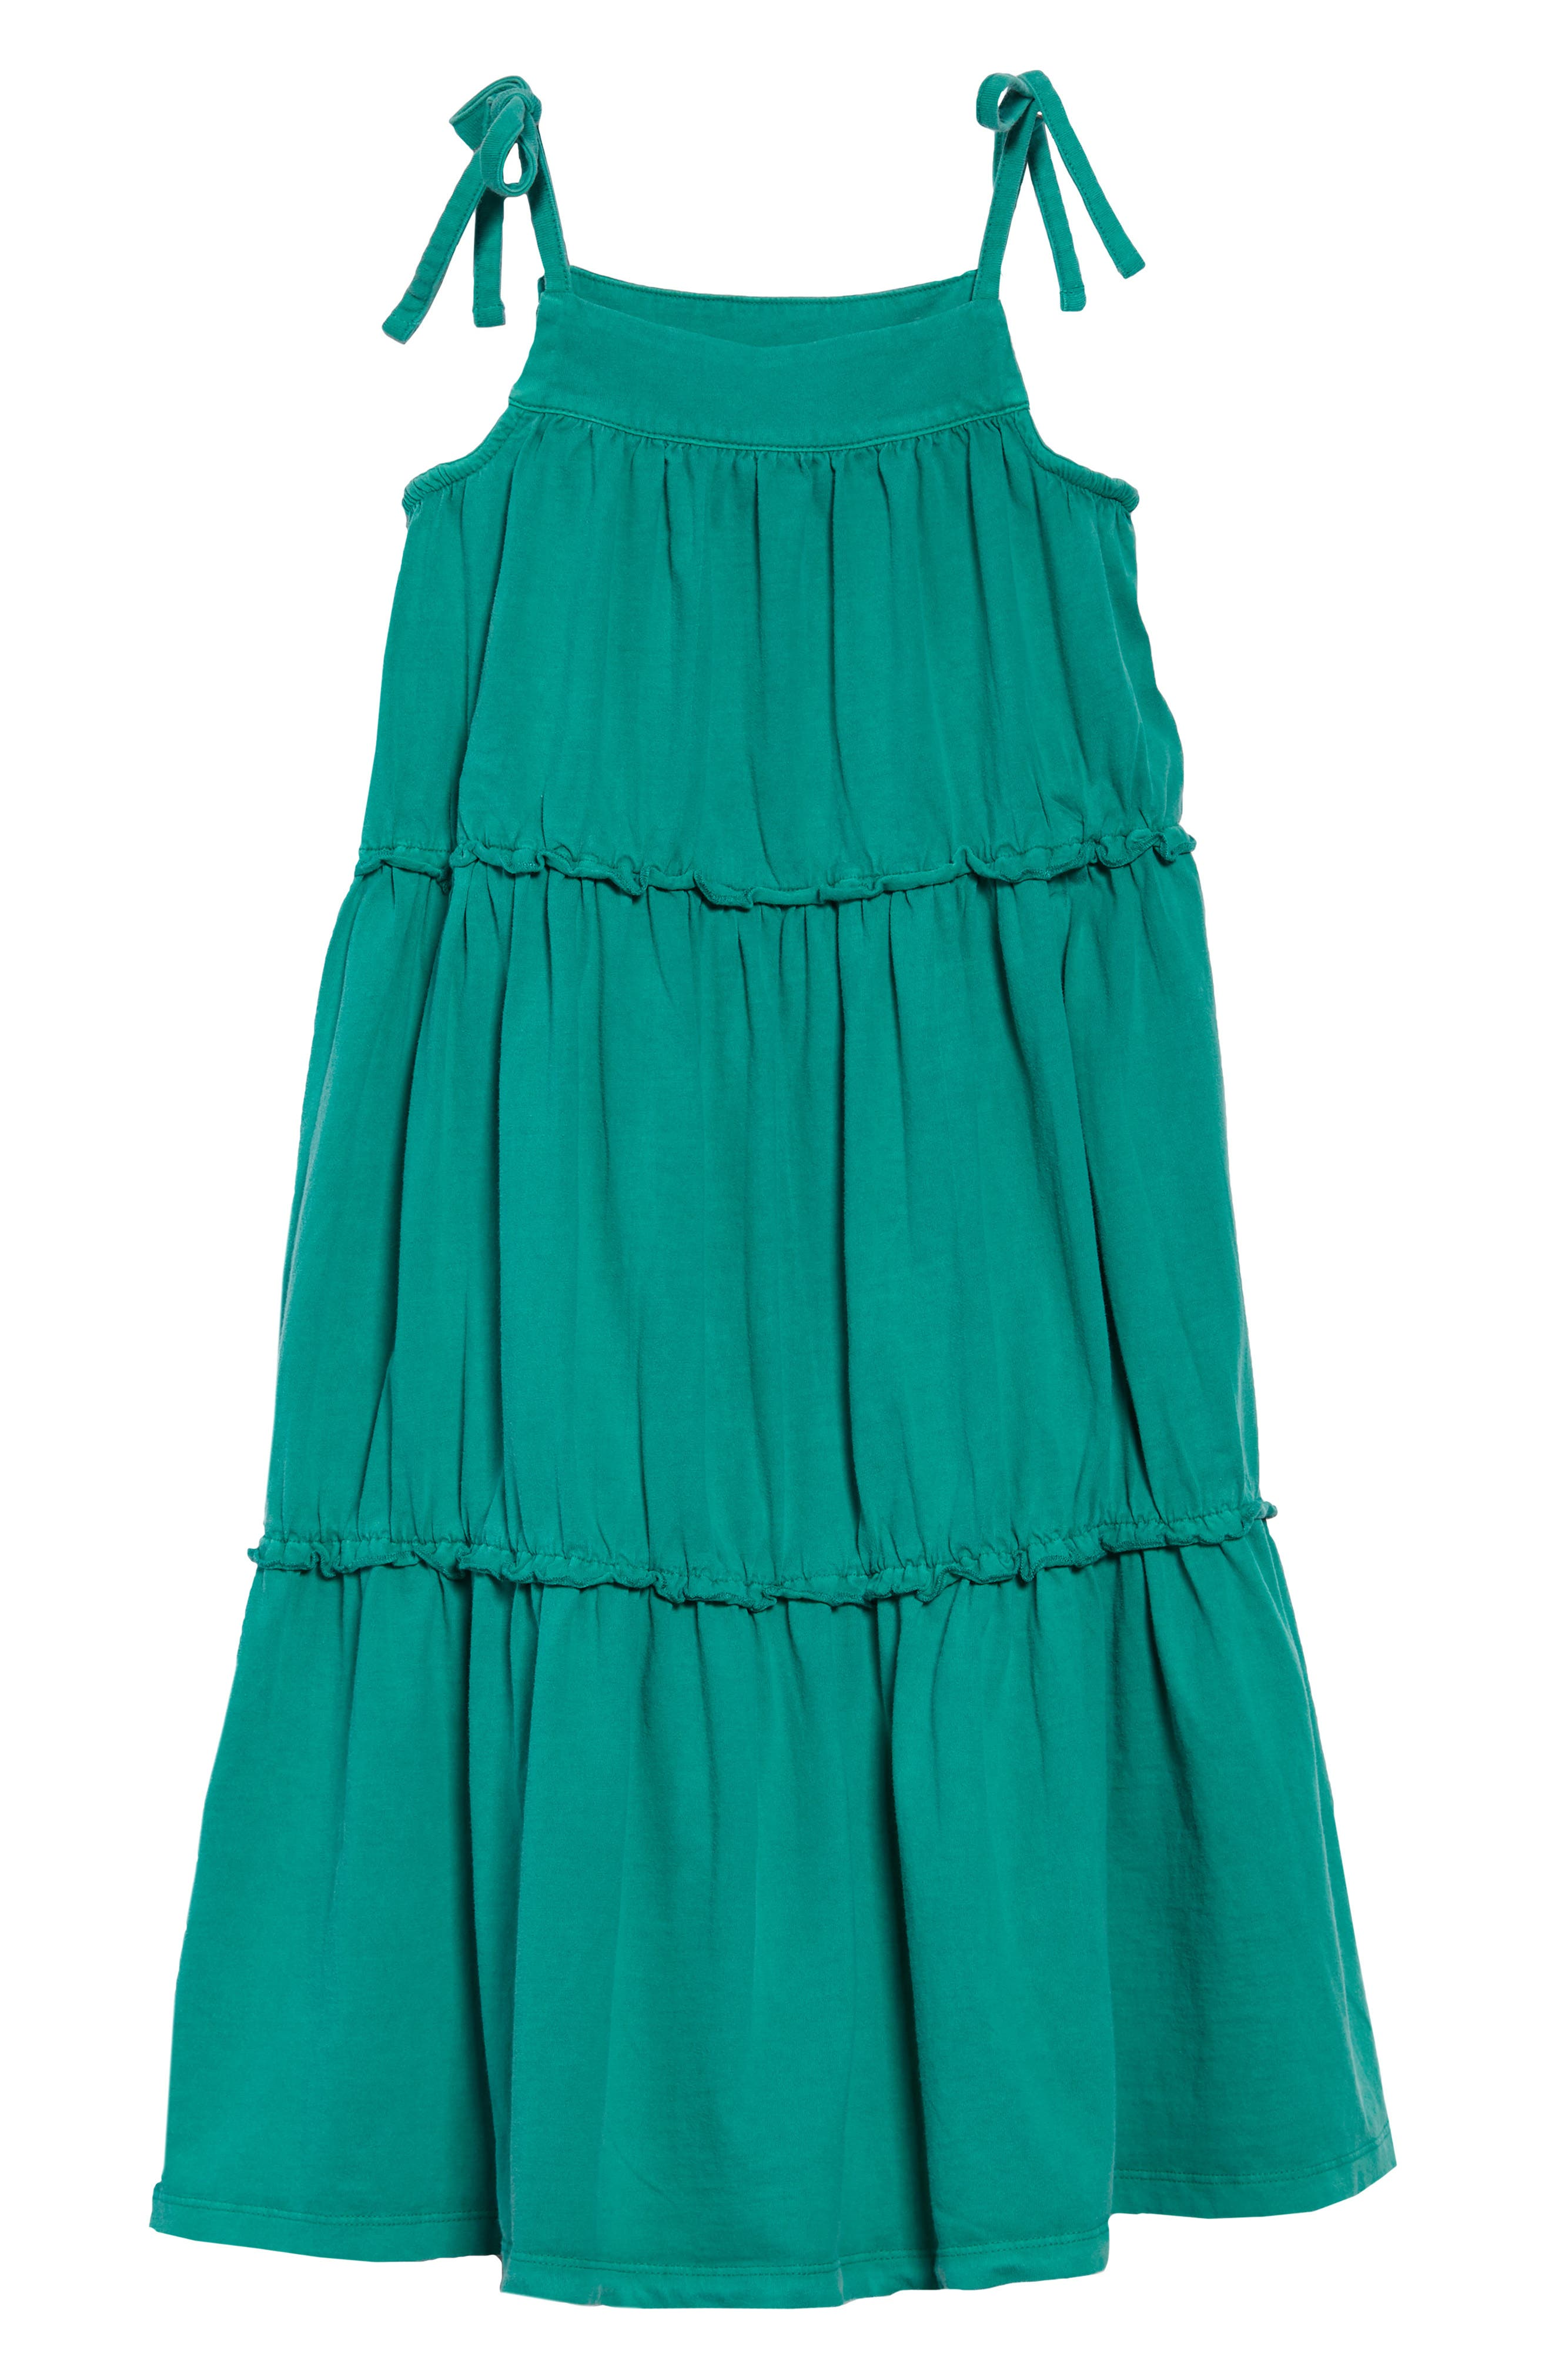 Tiered Sundress,                         Main,                         color, Green Pop